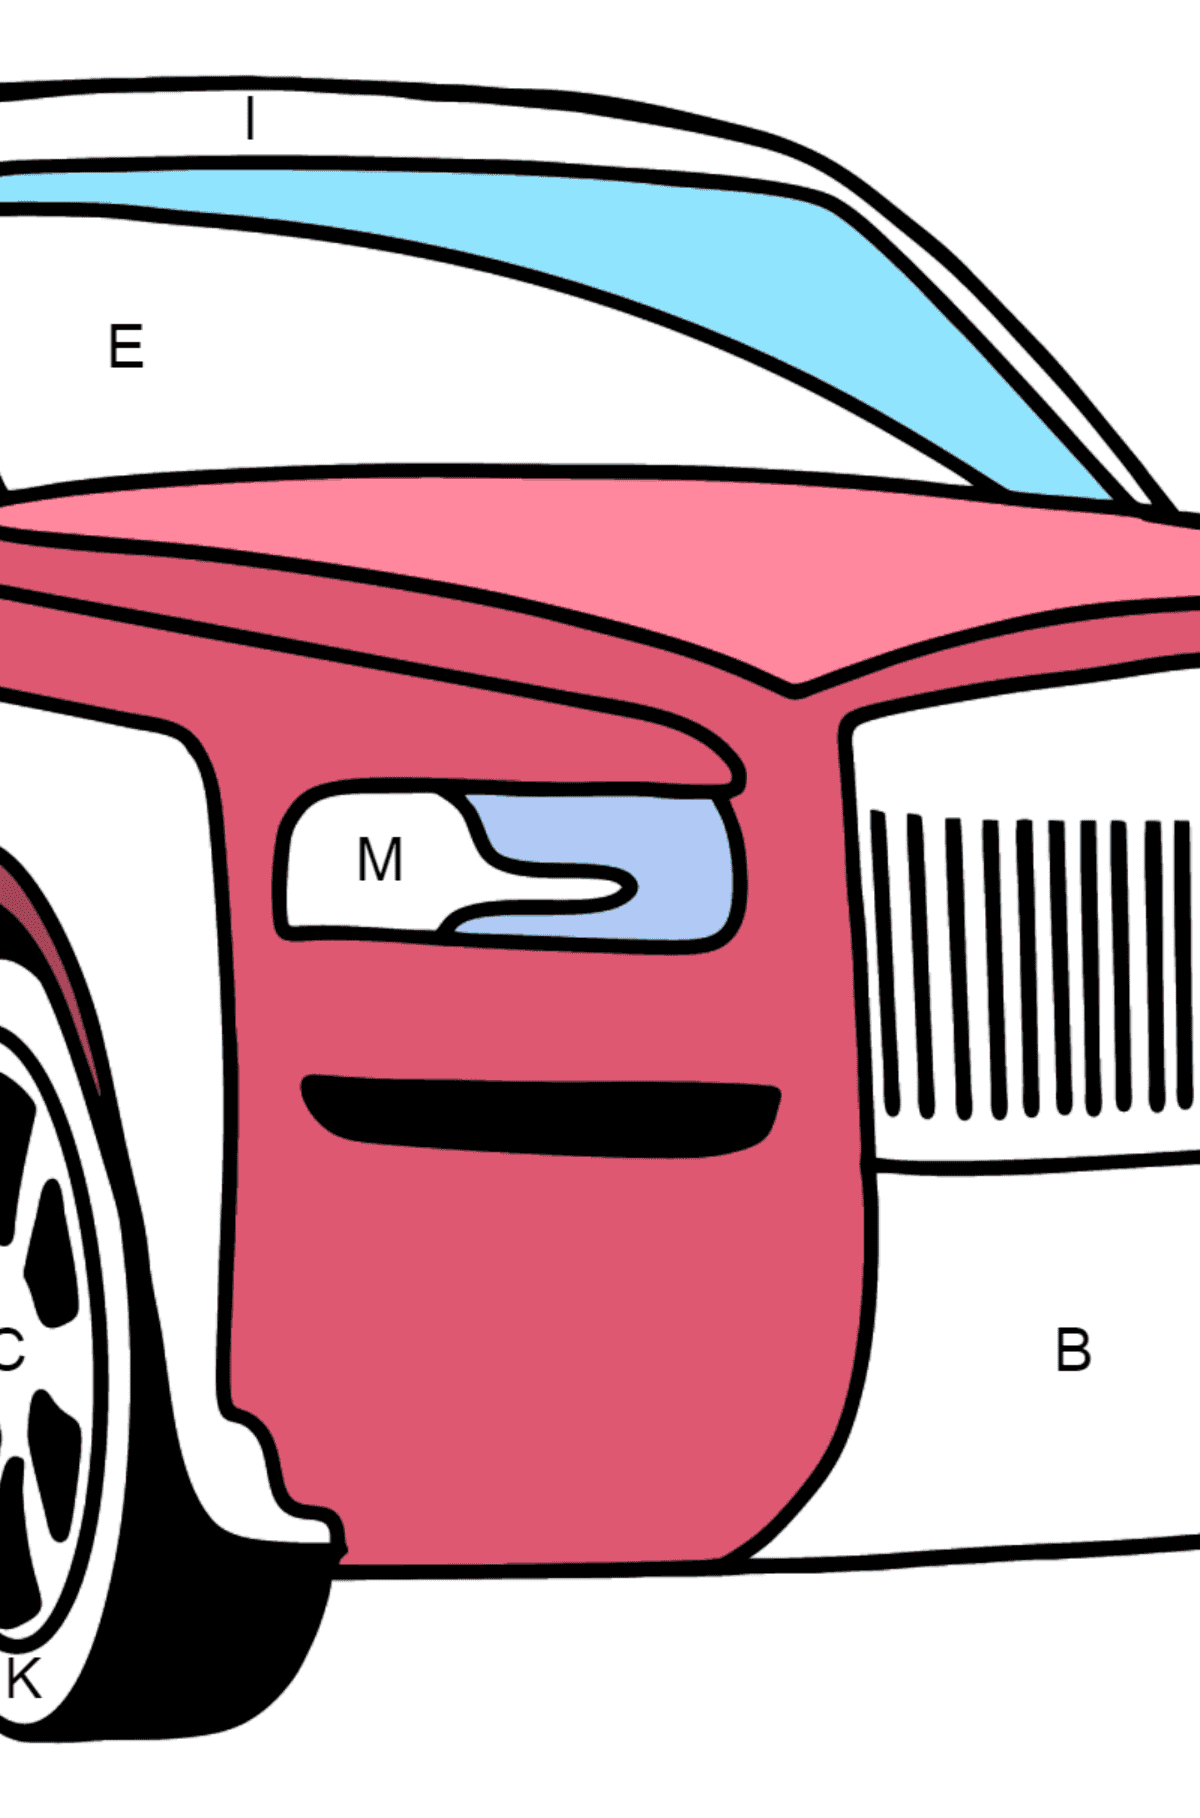 Rolls Royce Cullinan Car coloring page - Coloring by Letters for Kids